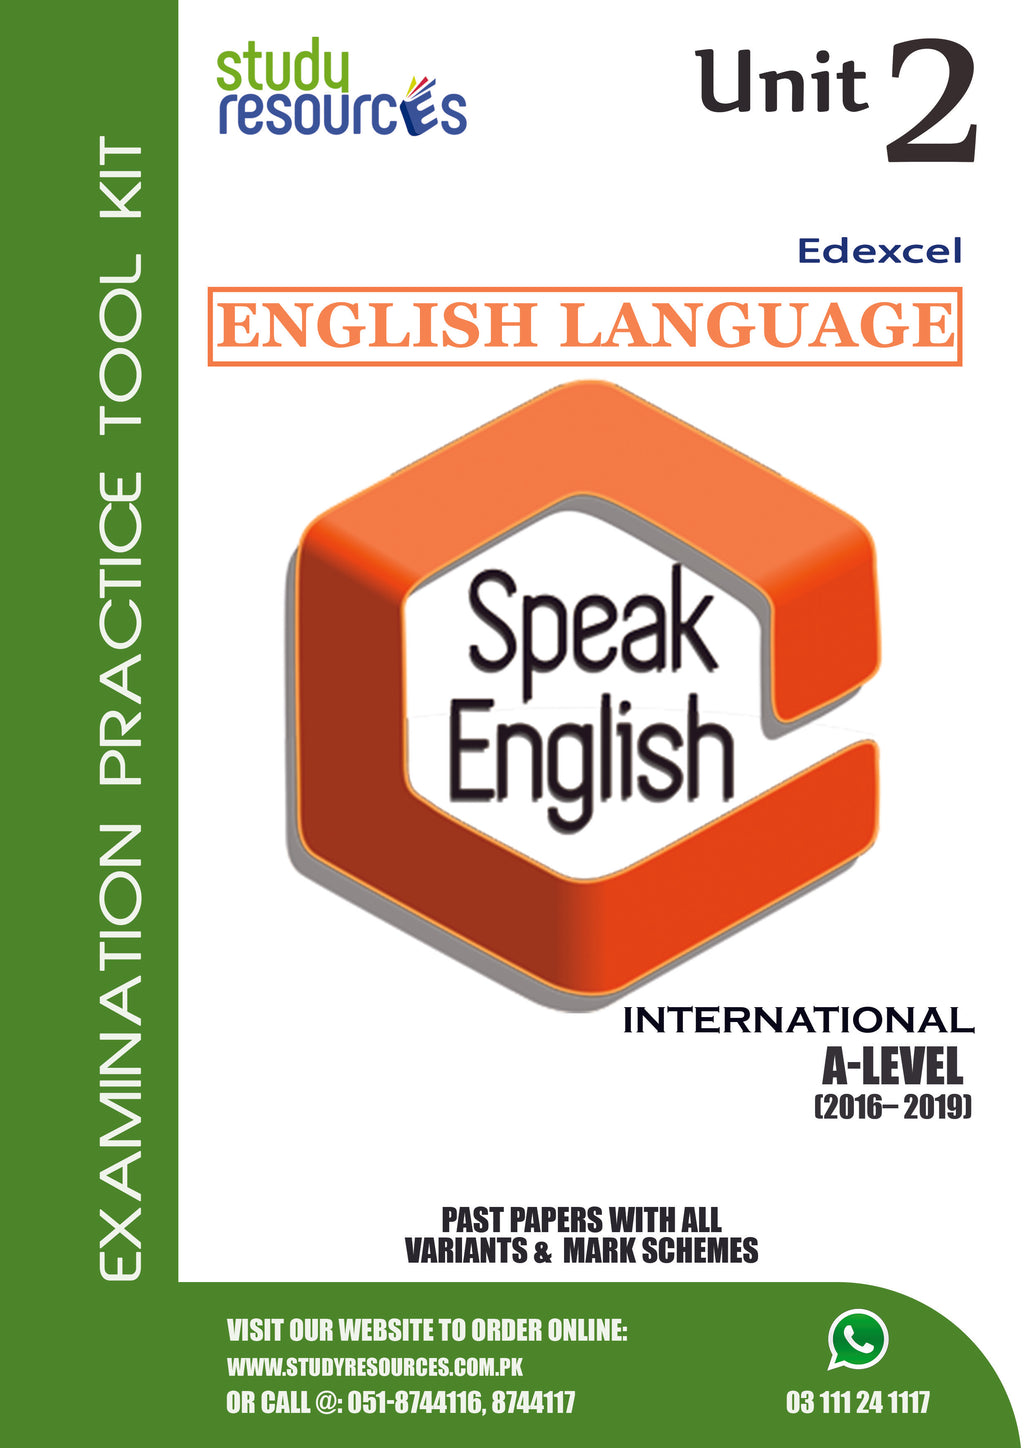 Edexcel A-Level English Language Unit-2 Past Papers (2016-2019)